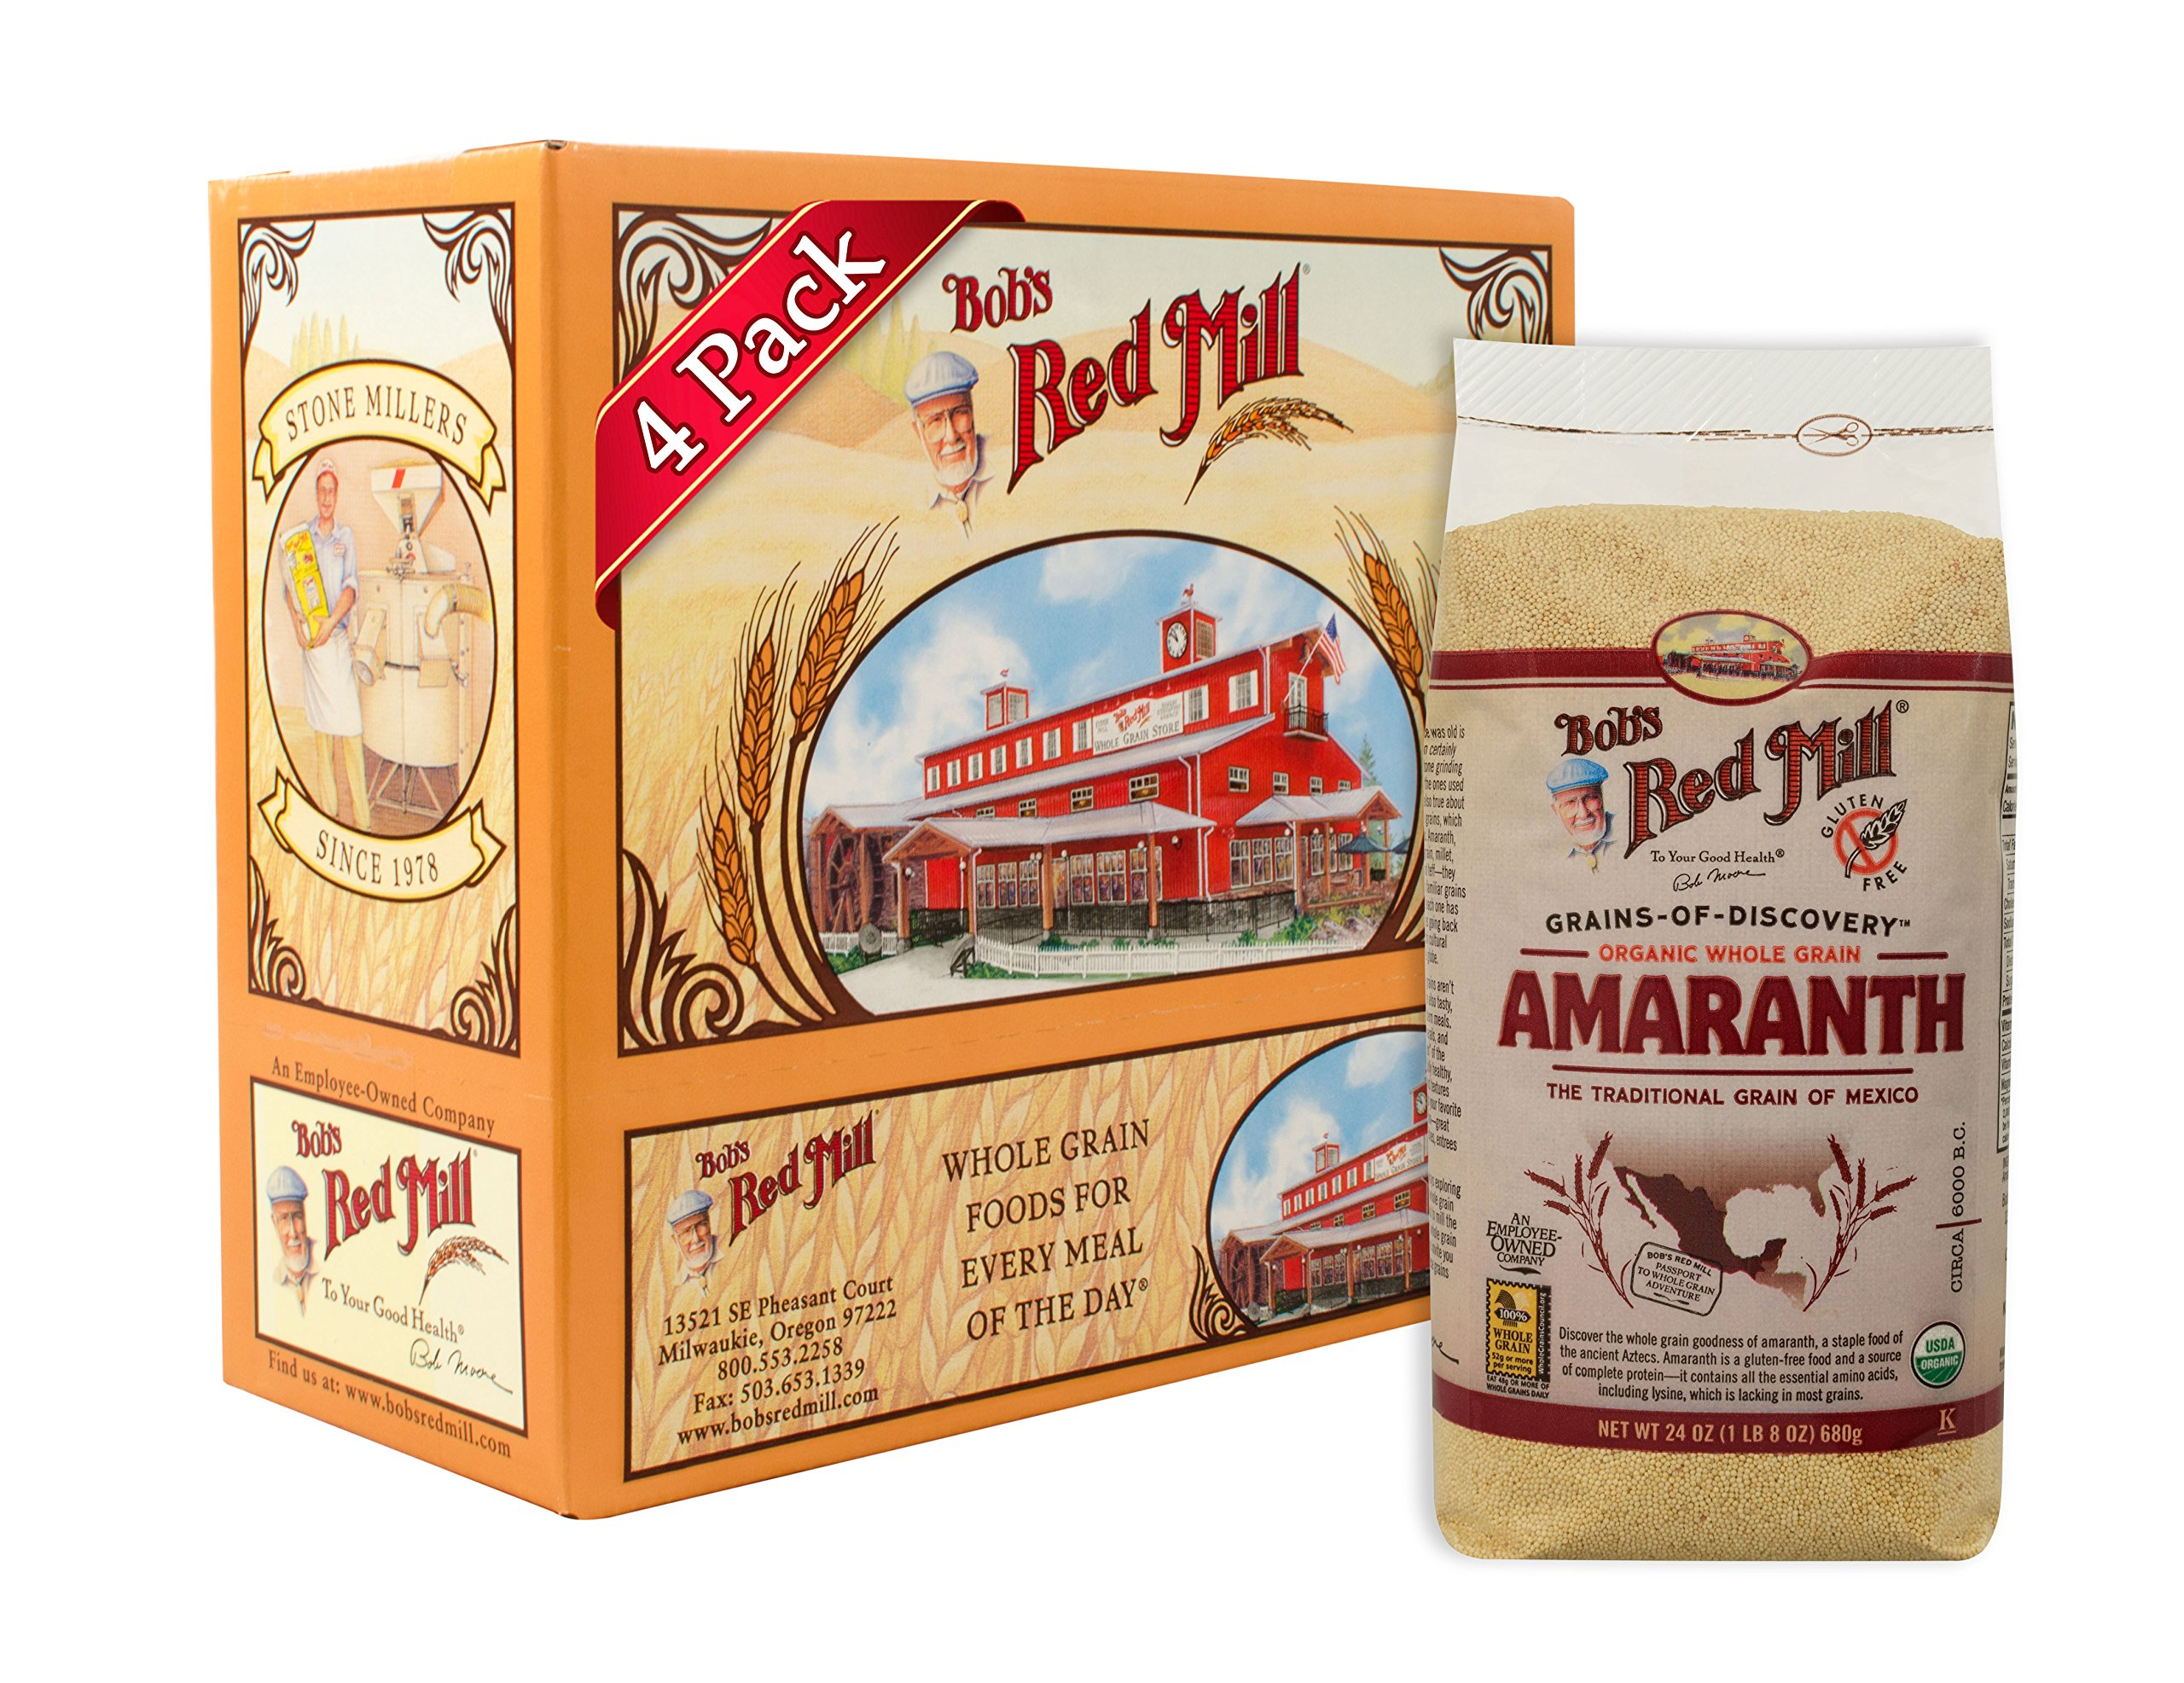 Bob's Red Mill Organic Whole Grain Amaranth, 24 Oz (4 Pack) by Bob's Red Mill